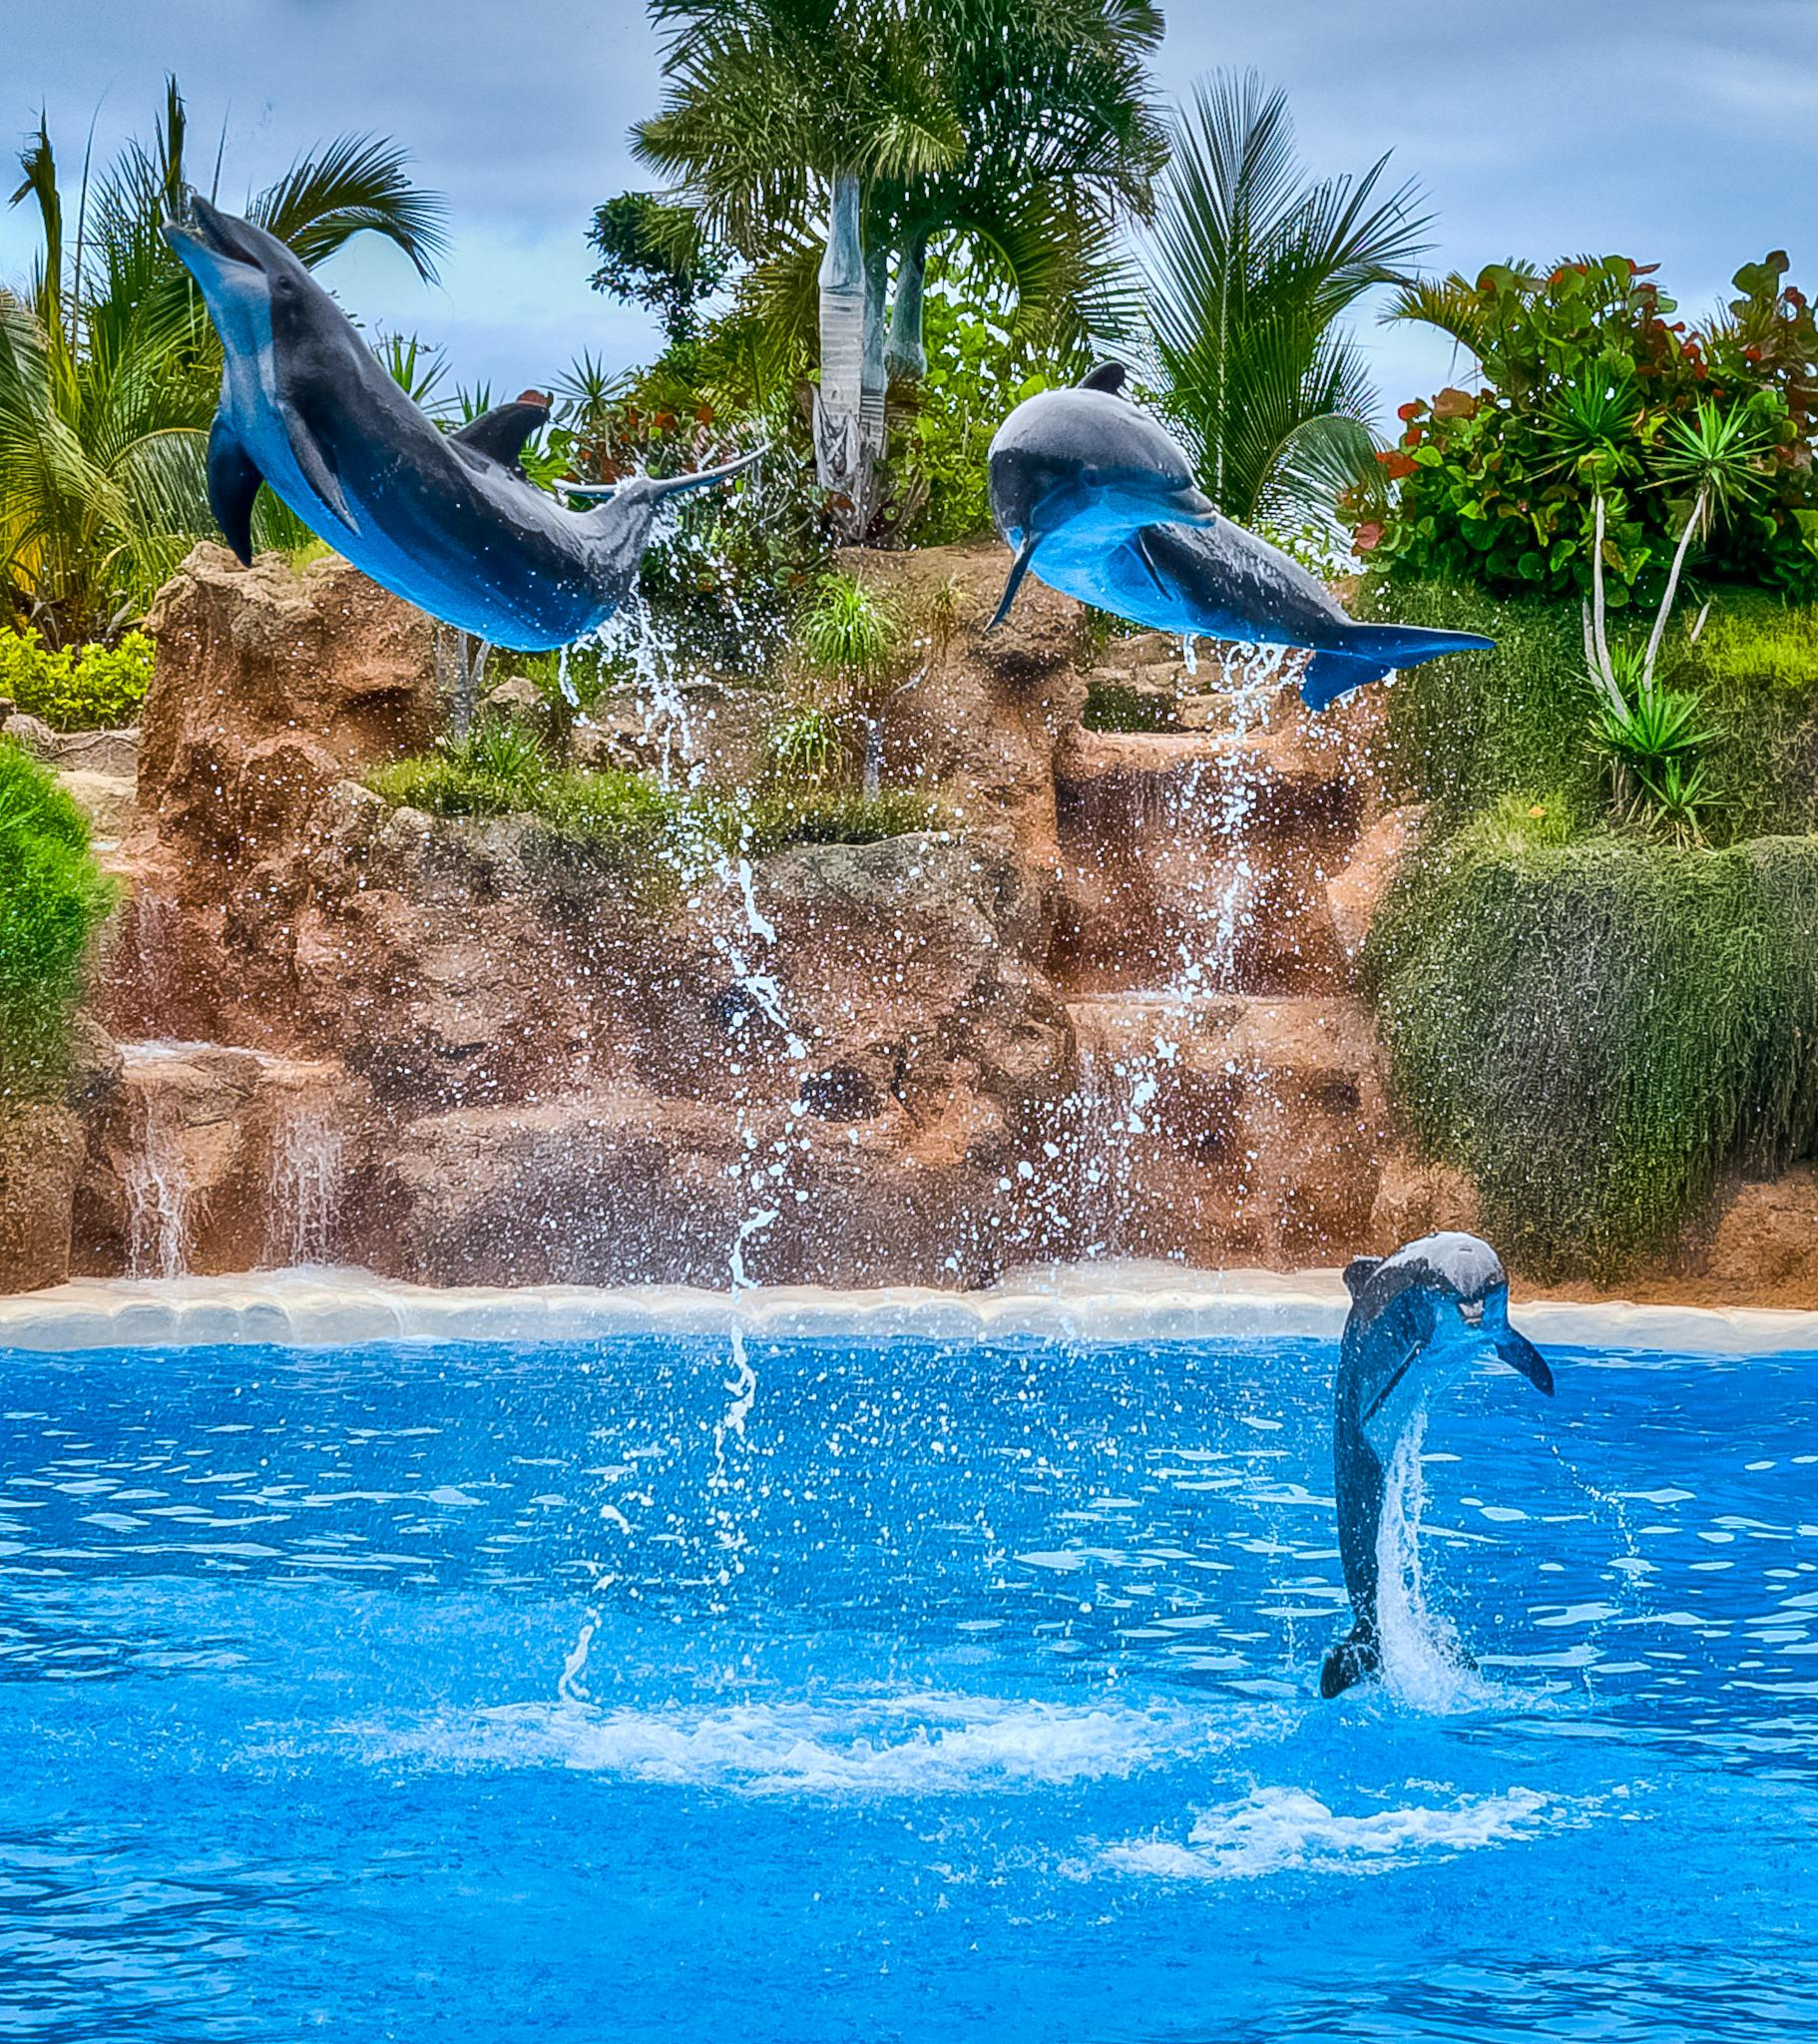 Flying dolphins by Eduard Andrica